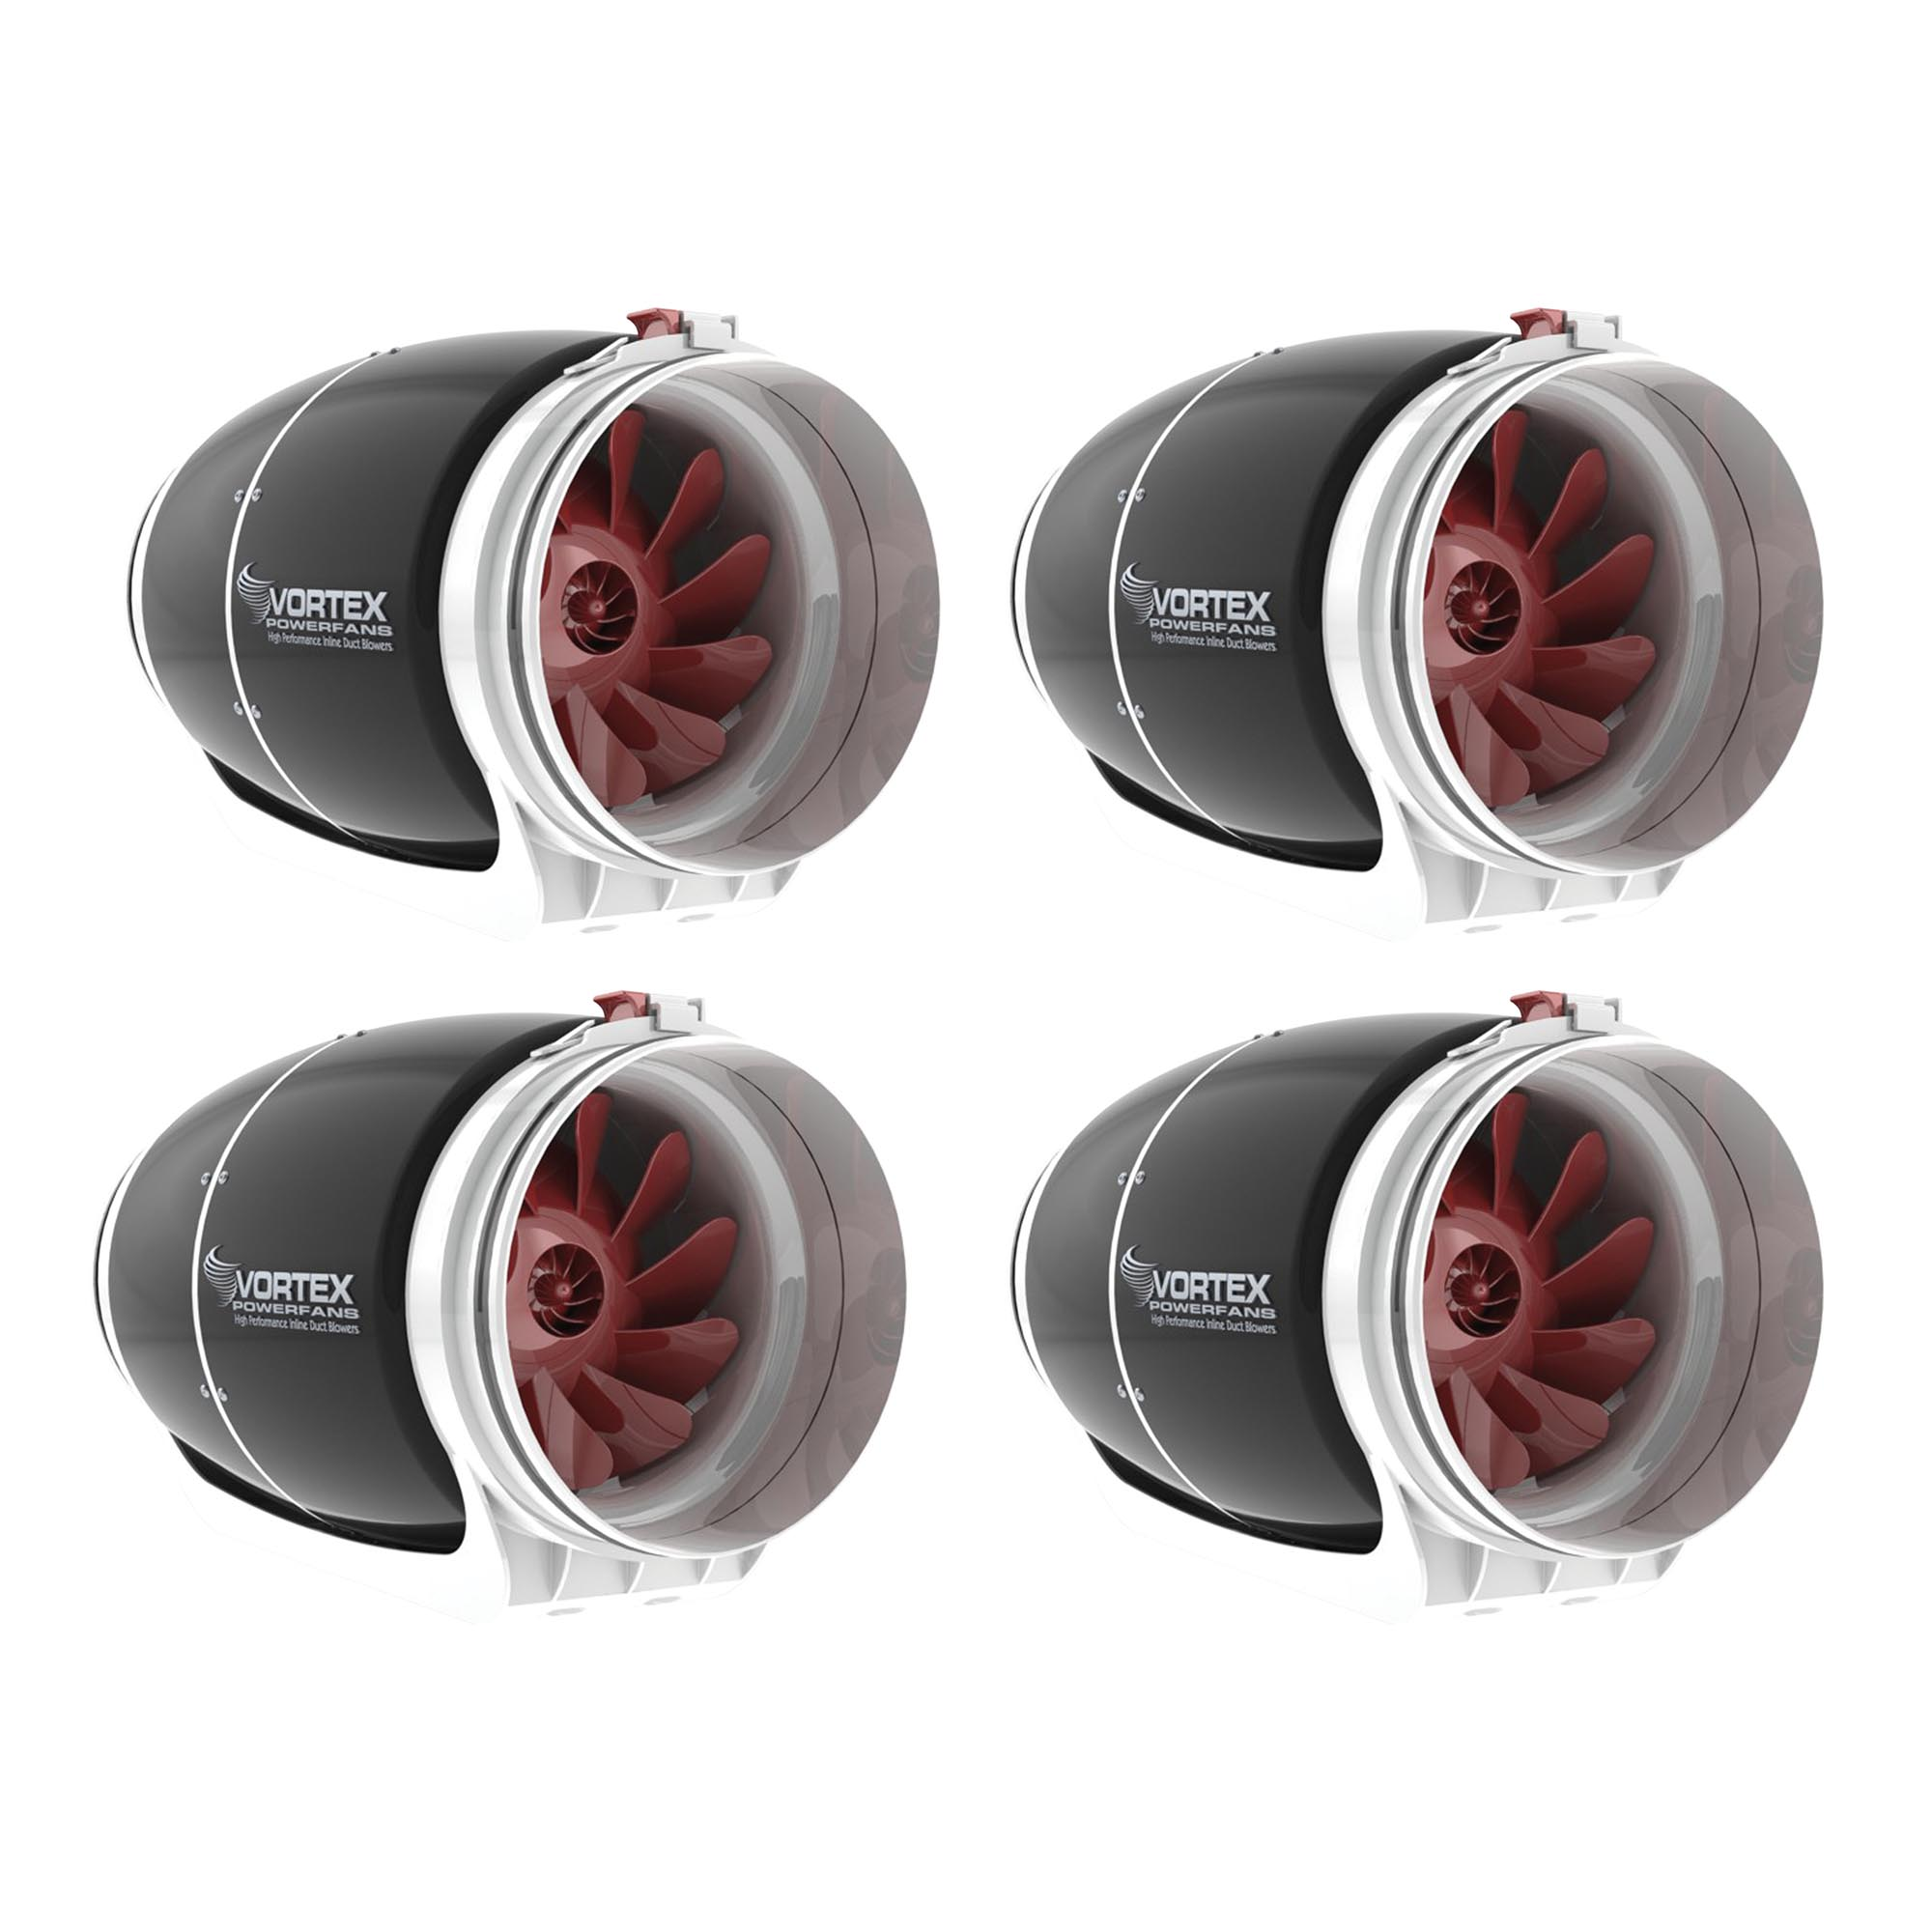 Vortex 8 Inch 728 CFM S Line Powerfan Inline Ventilation Duct Blower Fan, 4 Pack